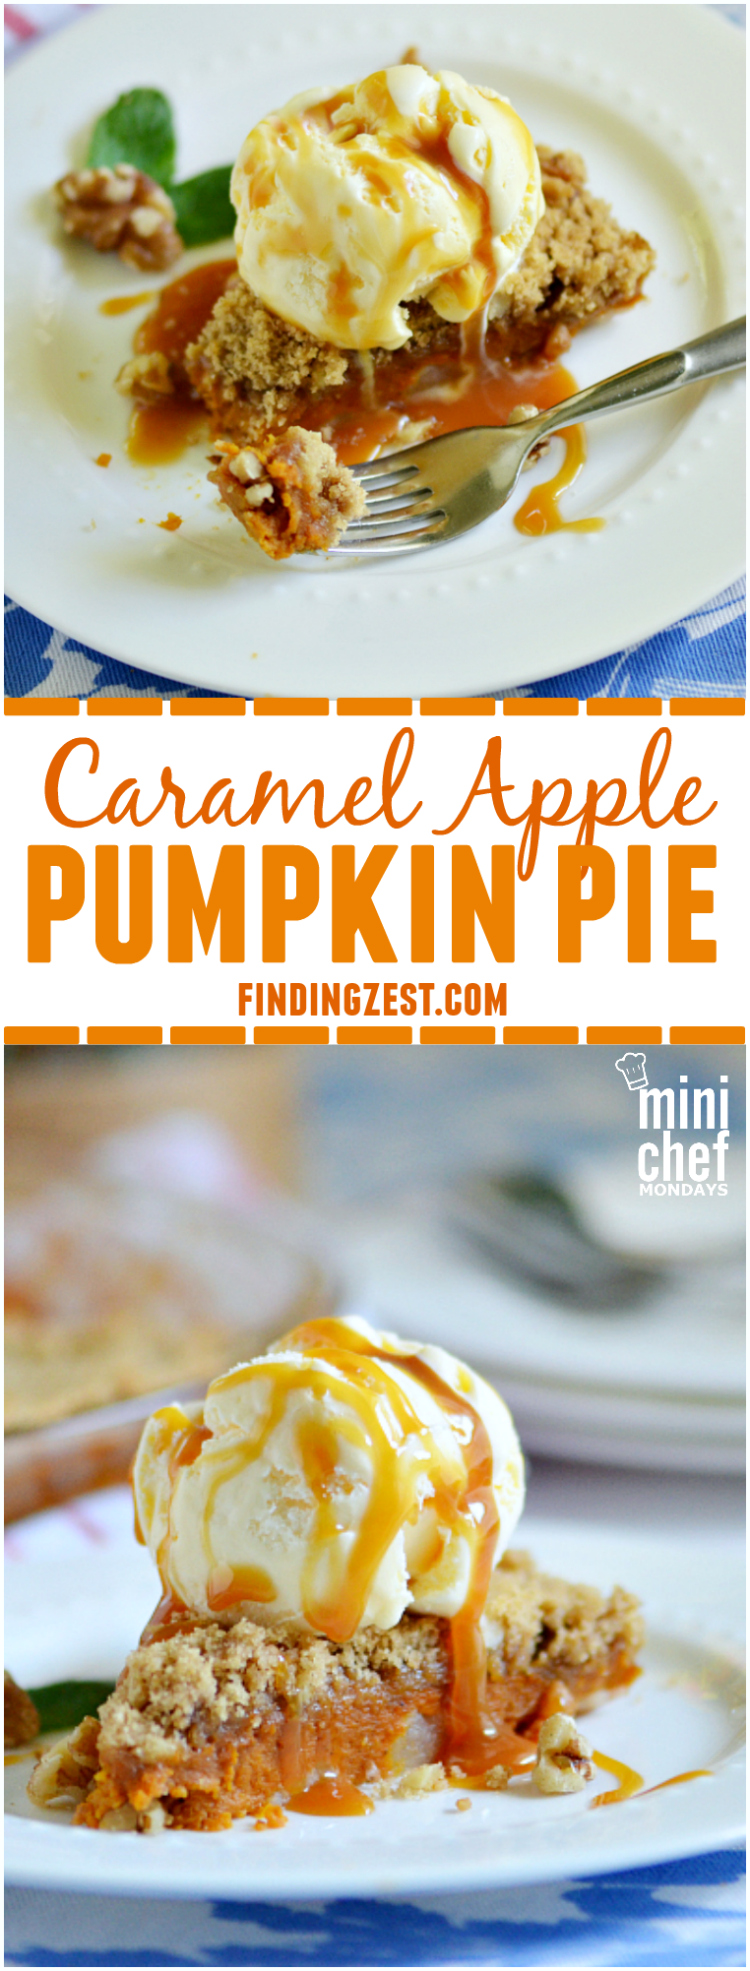 Combine two great flavors of fall in this Caramel Apple Pumpkin Pie. This crustless pumpkin pie is perfect for Thanksgiving dessert! Serve this pie topped with ice cream and caramel topping for a show-stopping crowd favorite!